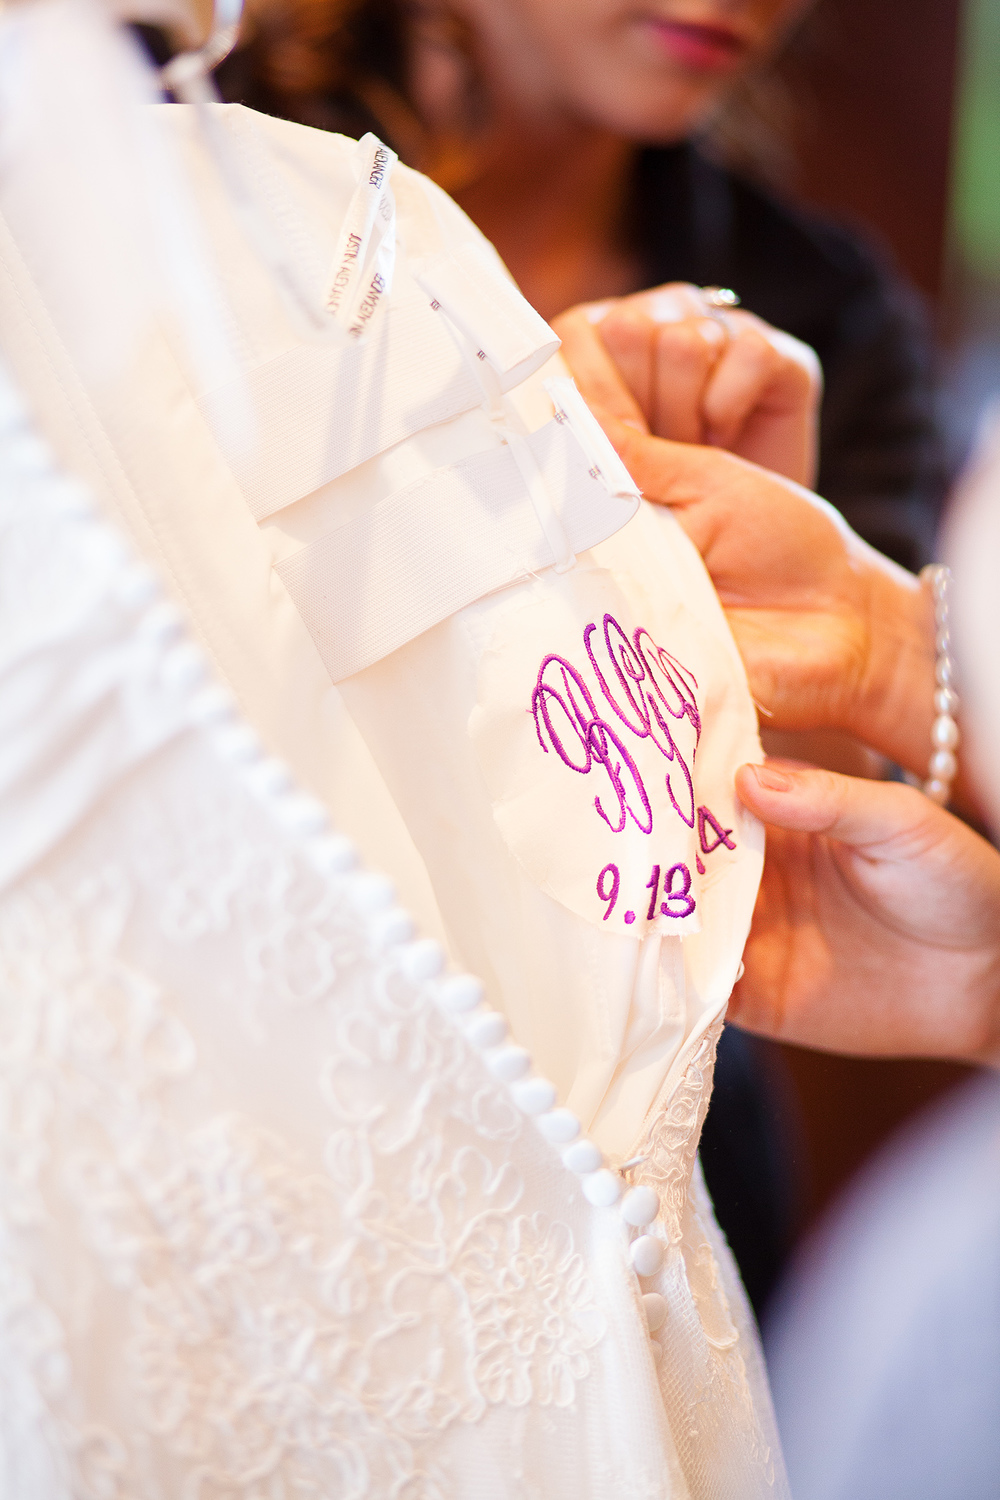 Initials Sewn in Bridal Gown